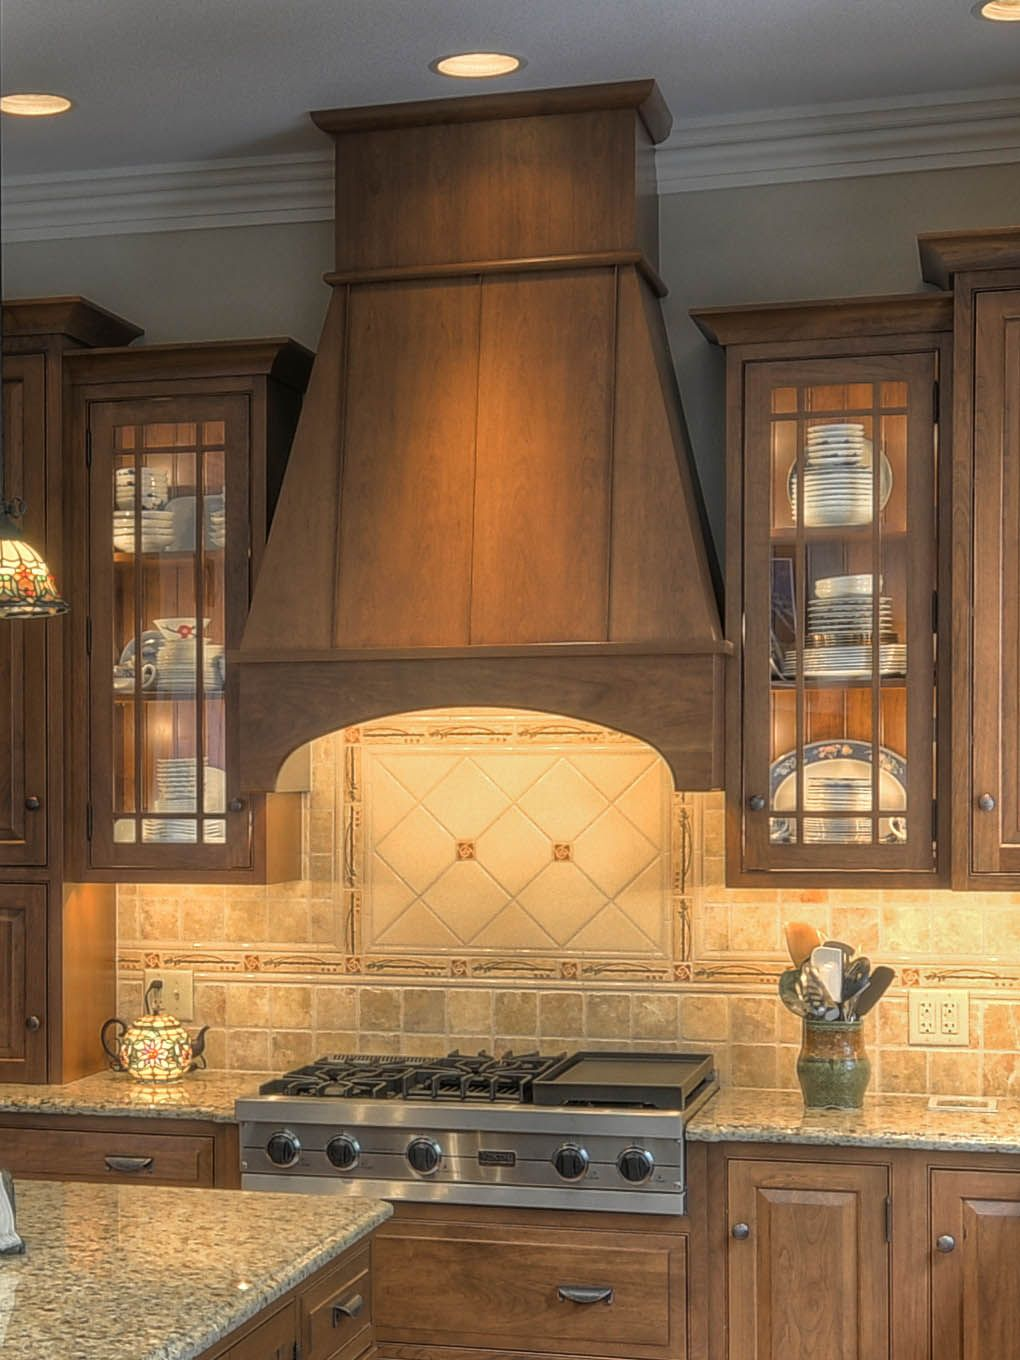 great of us hood benefits vent inserts insert the hoods kitchen disappearing design